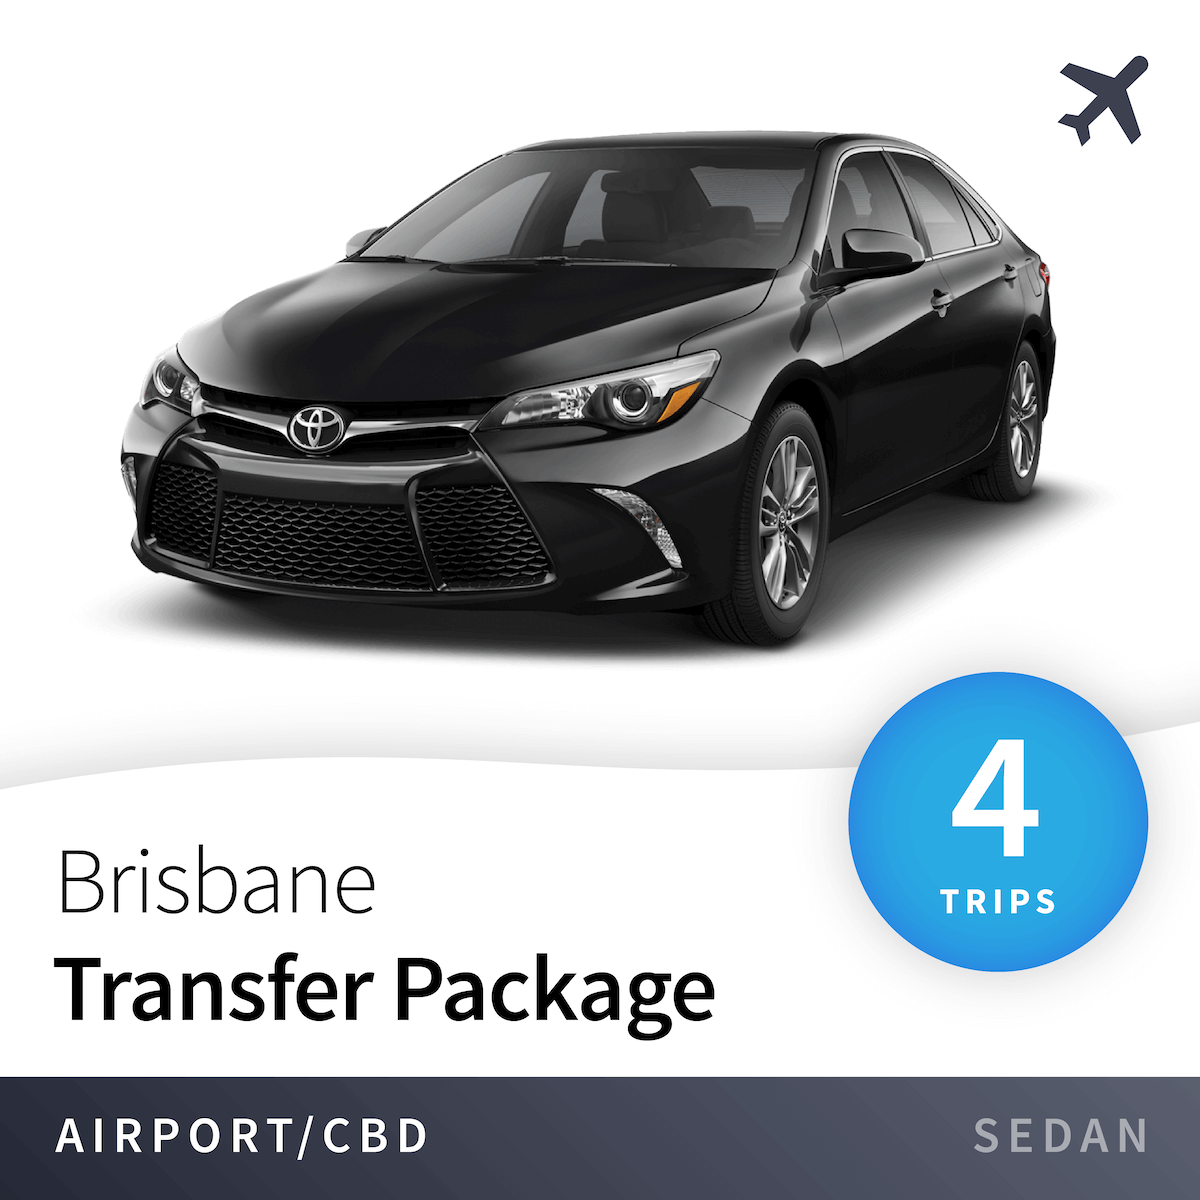 Brisbane Airport Transfer Package - Sedan (4 Trips) 18